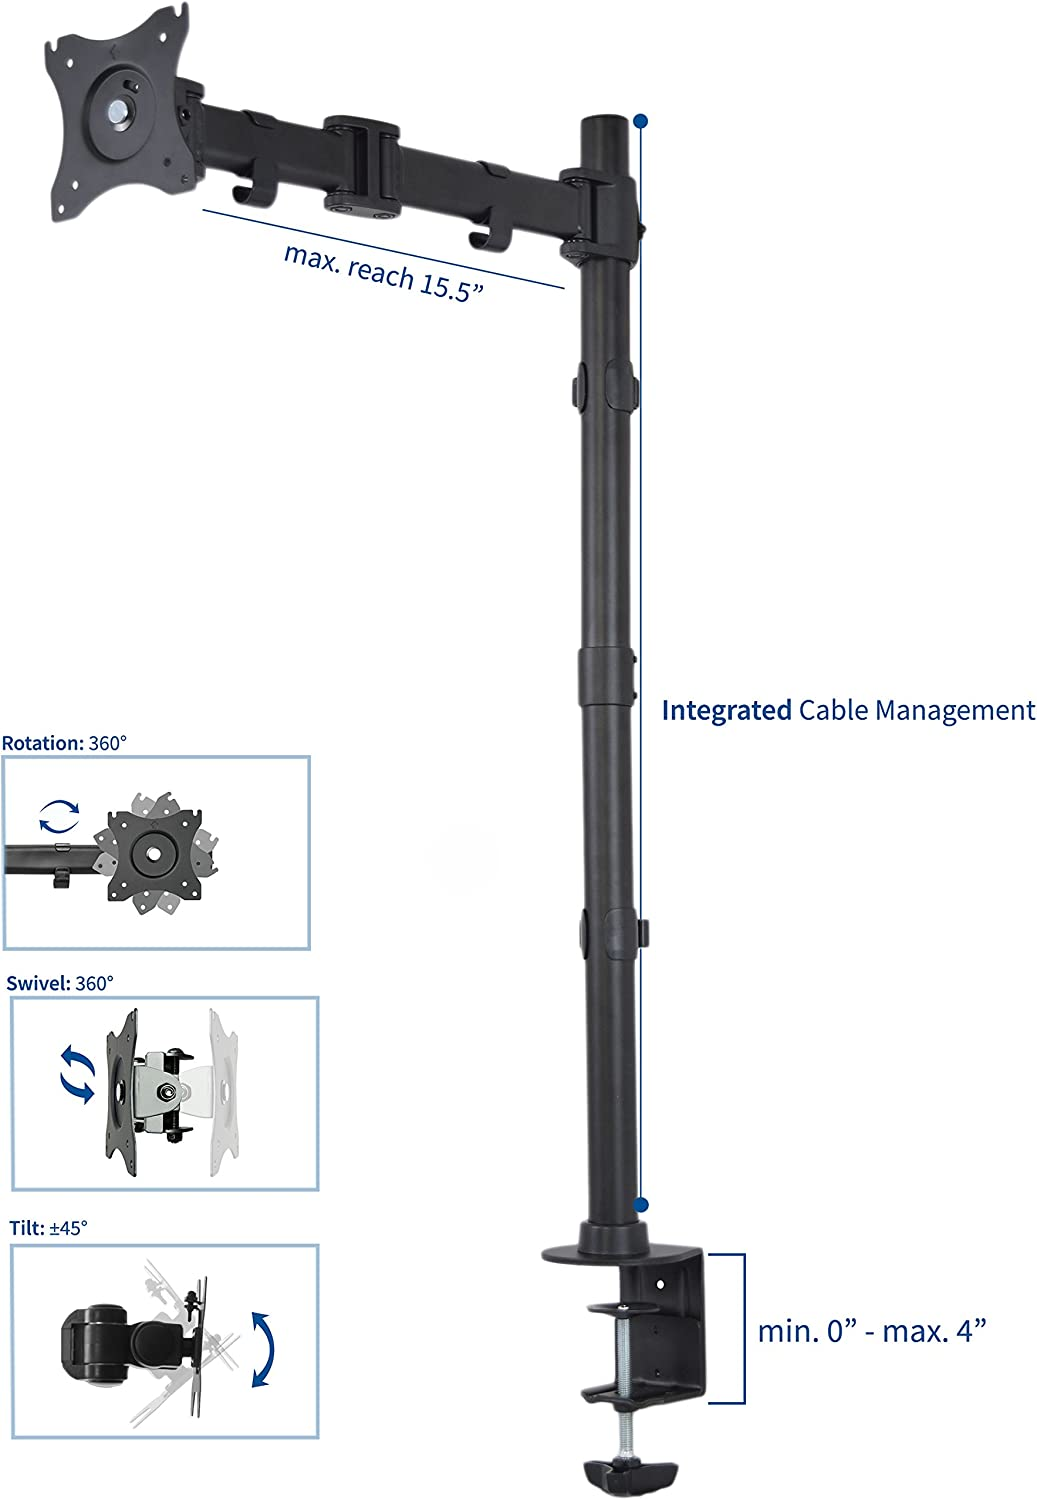 STAND-V001M VIVO Single Monitor Desk Mount Fully Adjustable Articulating Stand for 1 LCD Screen up to 32 inches